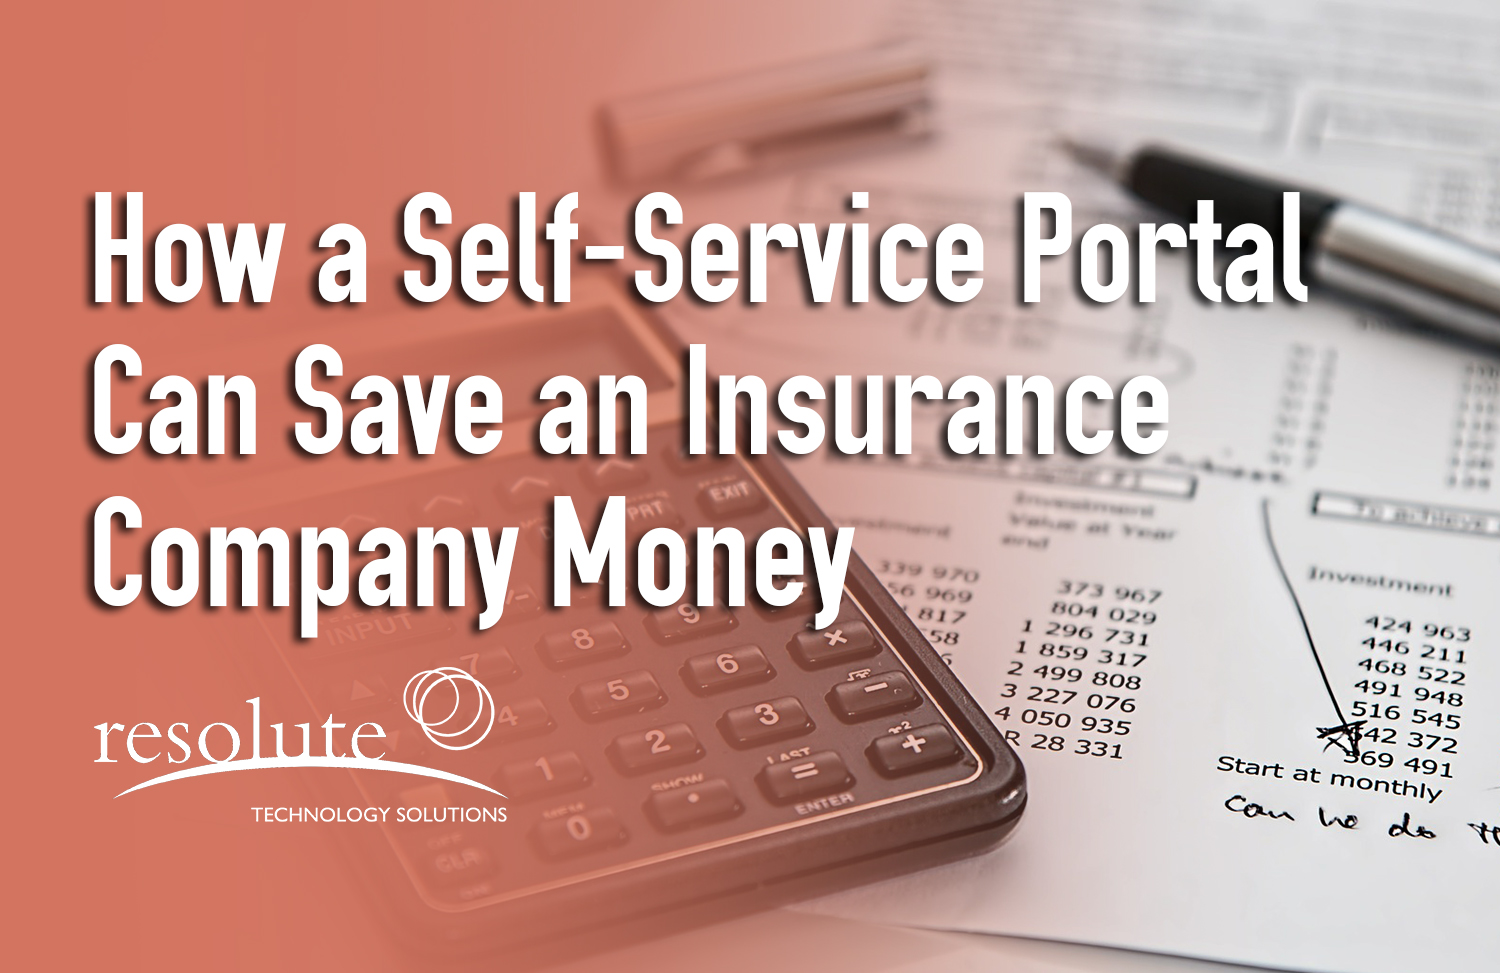 How a Customer Self-Service Portal Can Save an Insurance Company Money